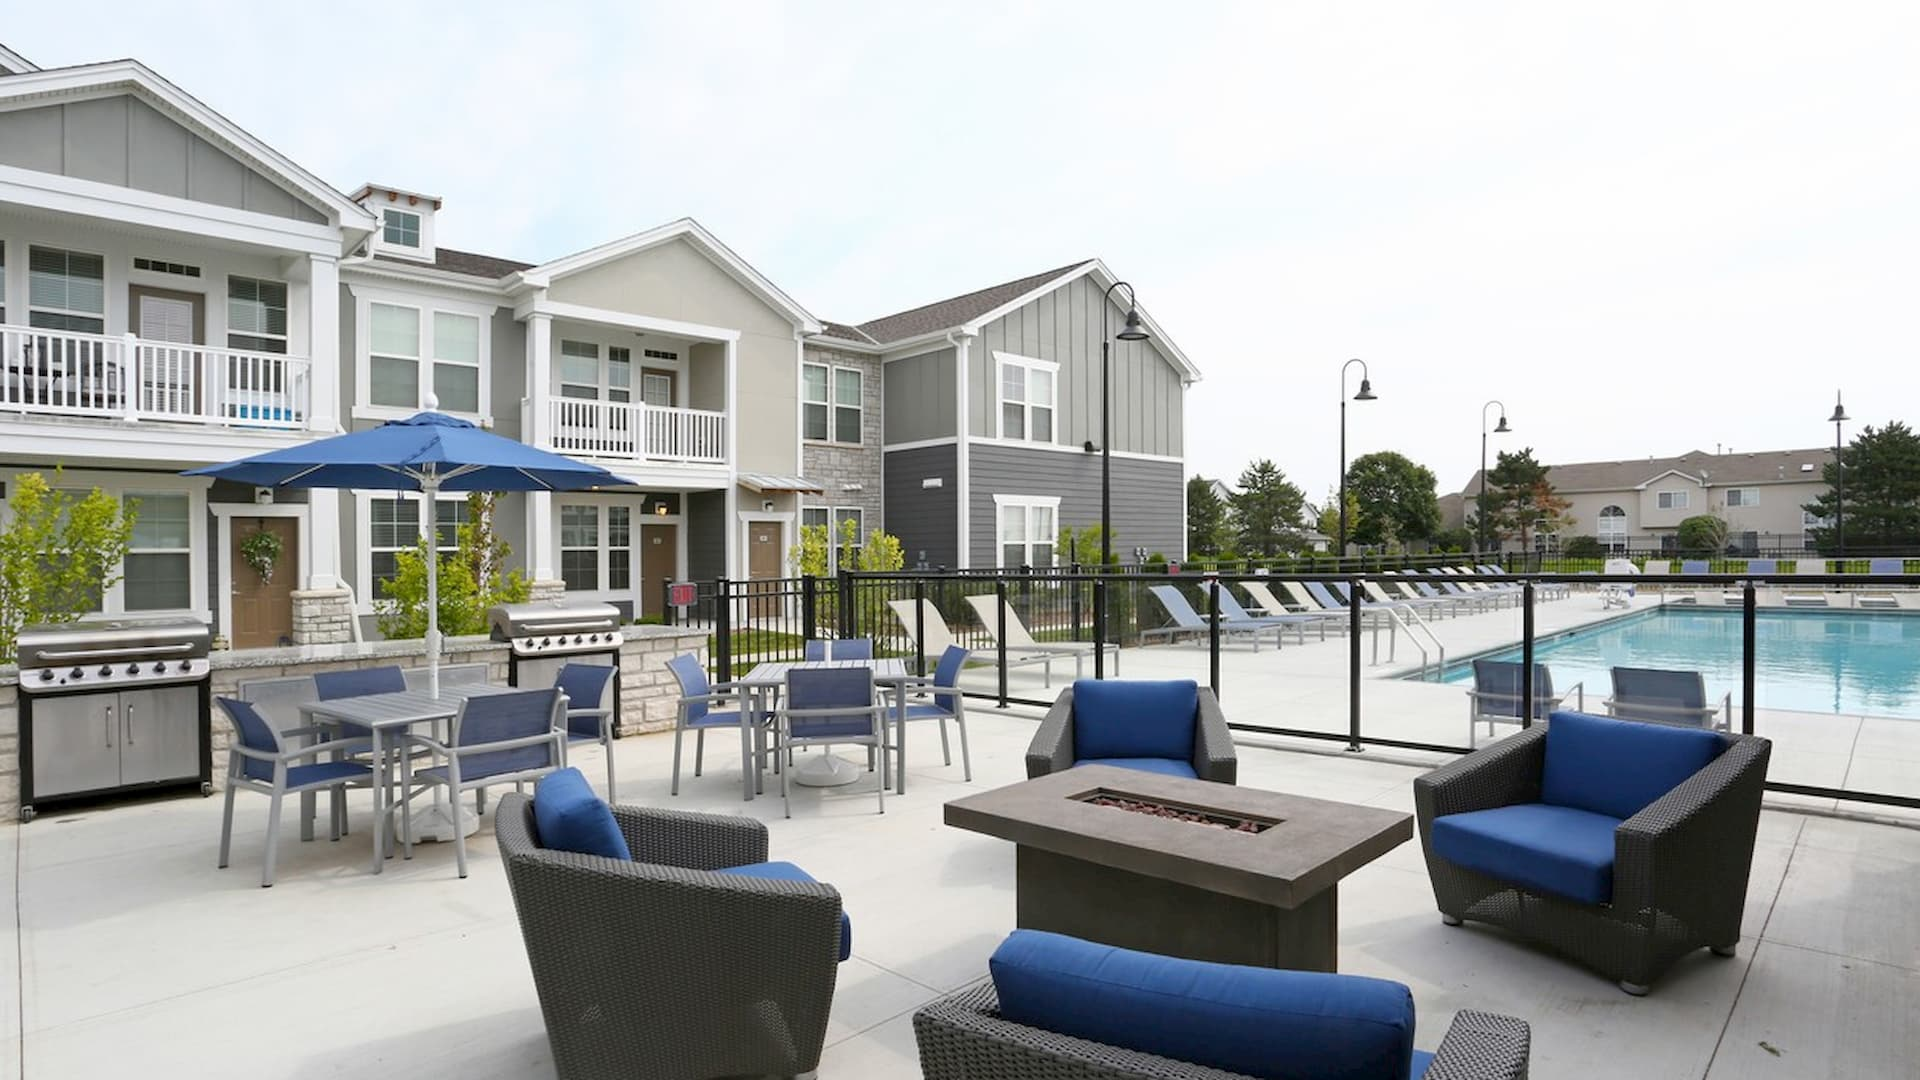 springs-at-orchard-road-apartments-north-aurora-il-pool-patio